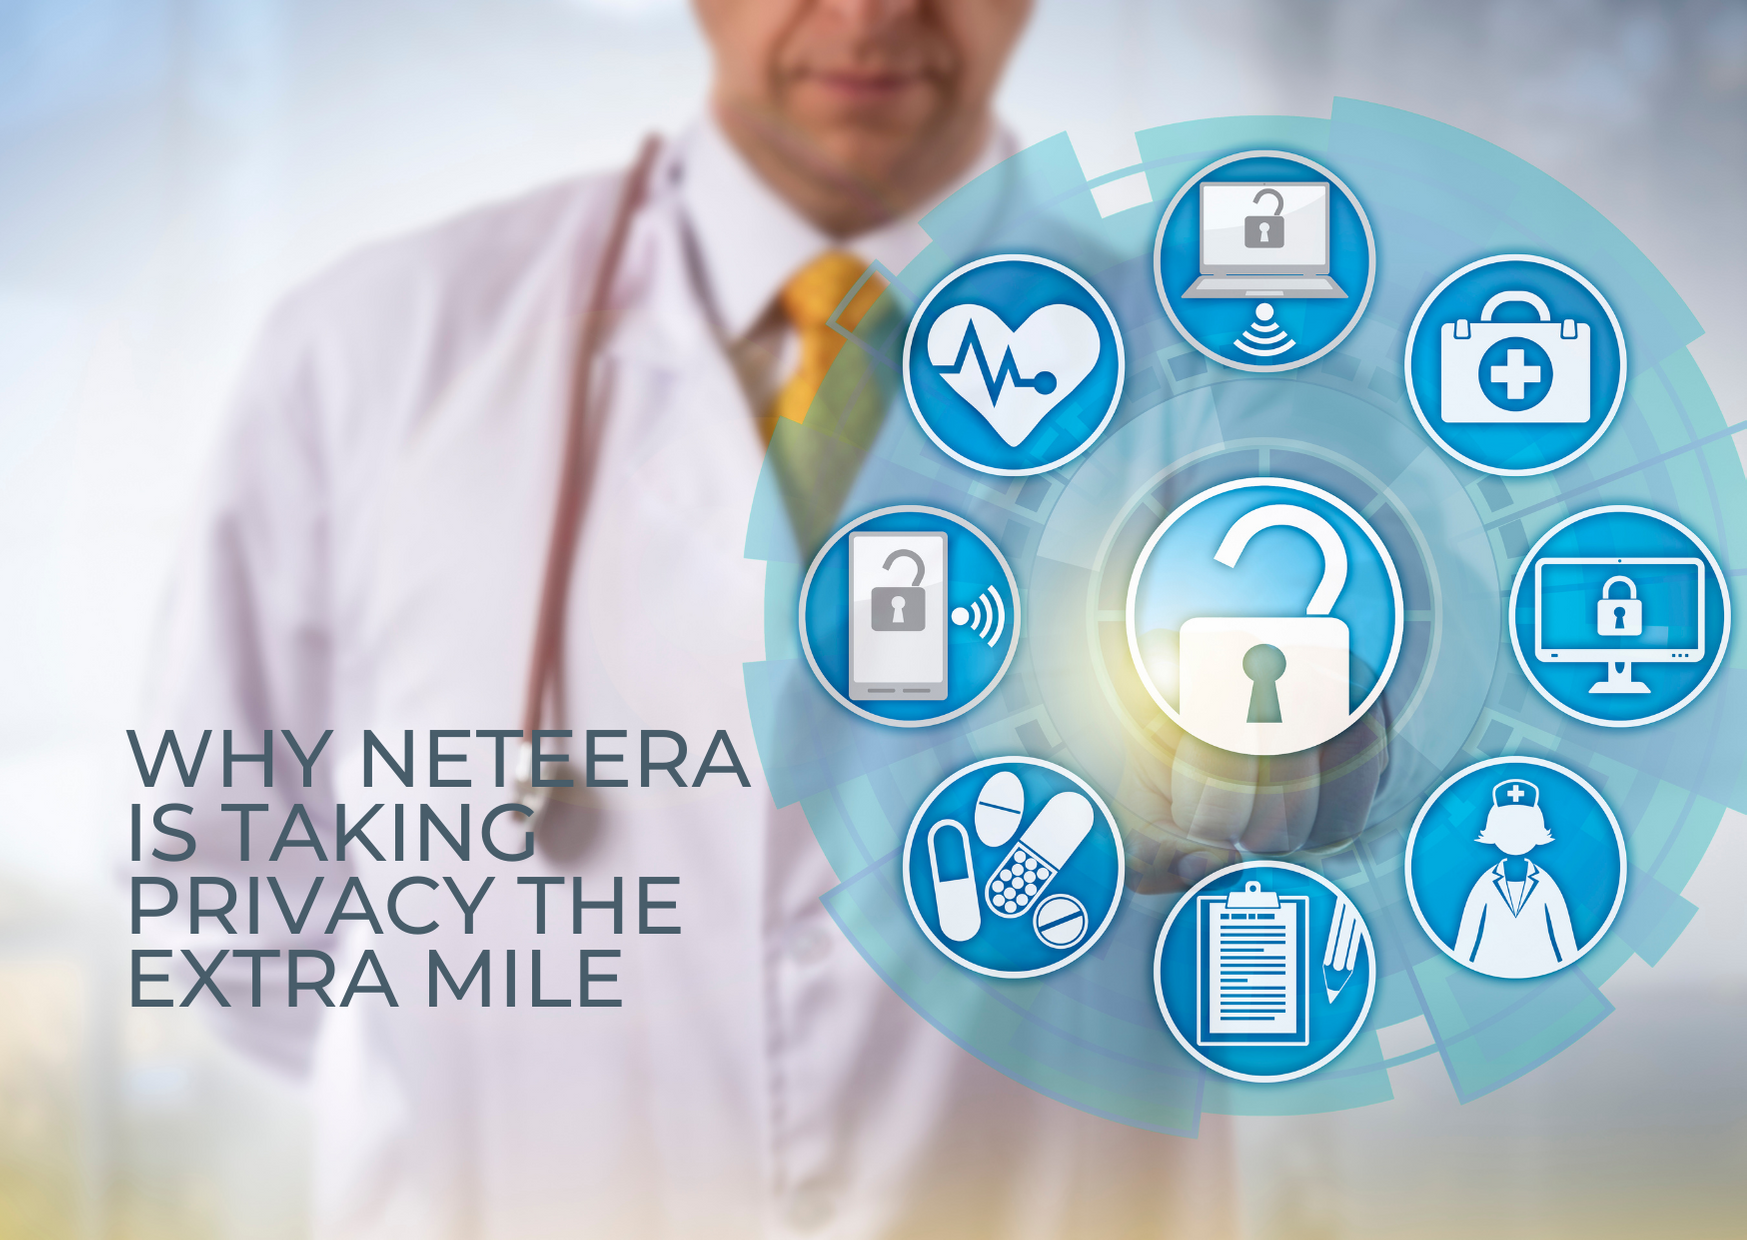 Why Neteera is taking privacy the extra mile